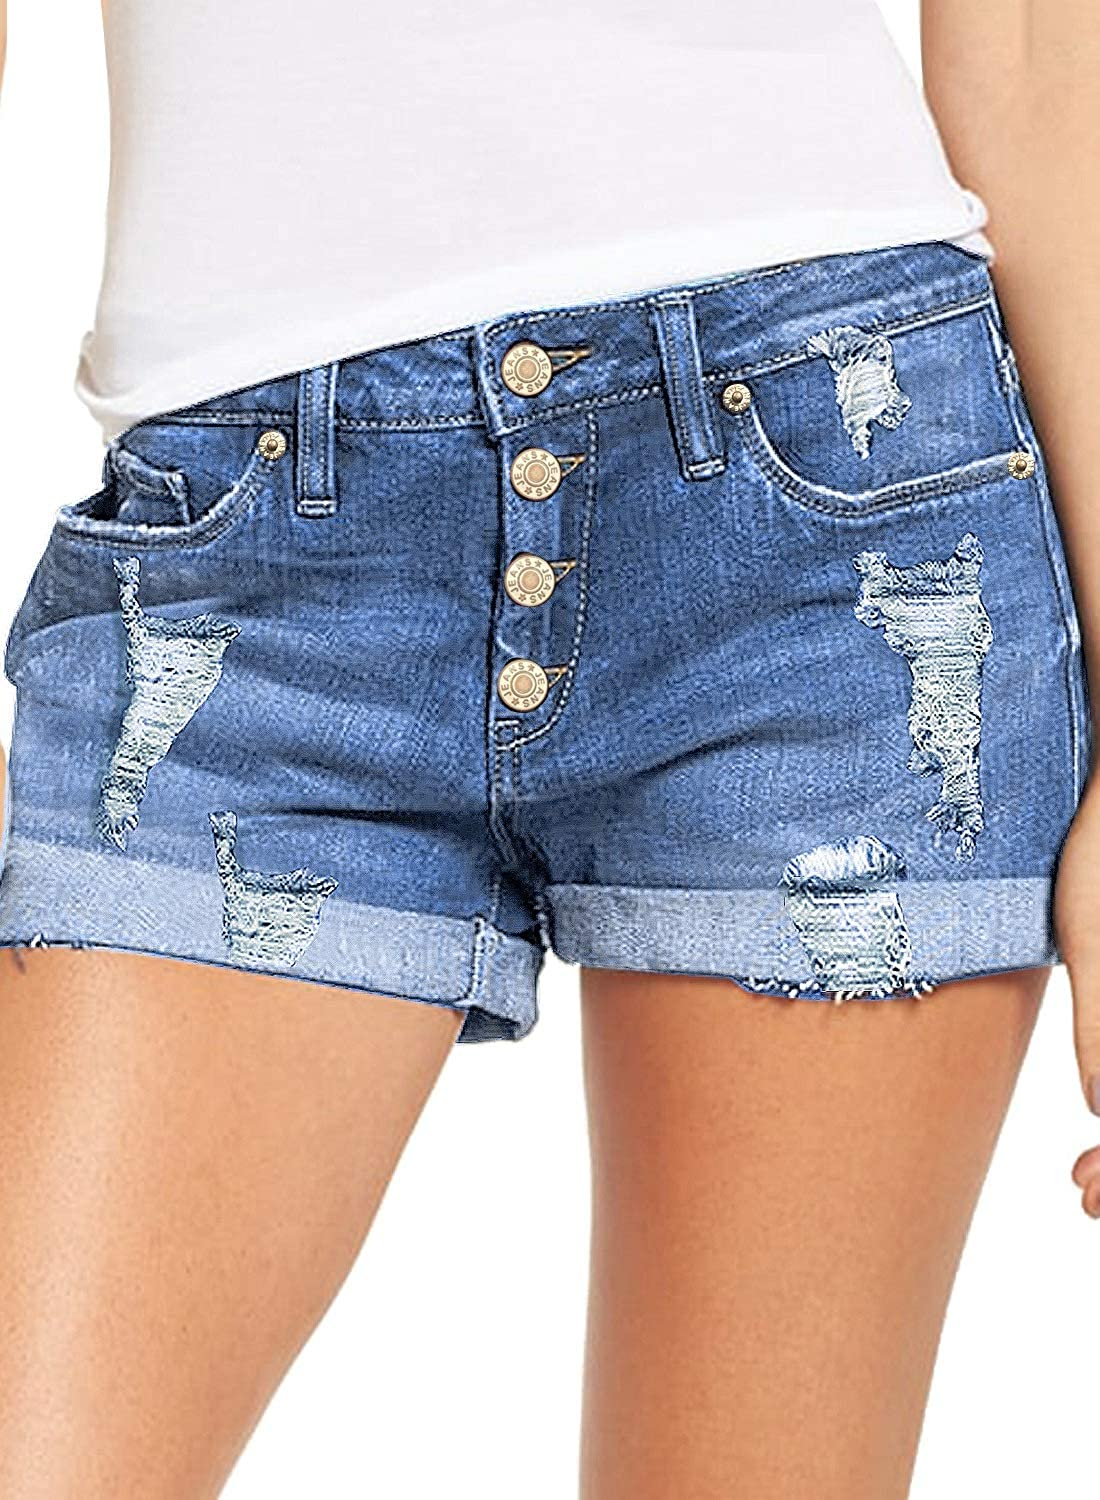 luvamia Women's 1 year warranty Ripped Denim Jean Shorts Waisted F Stretchy Sale price High